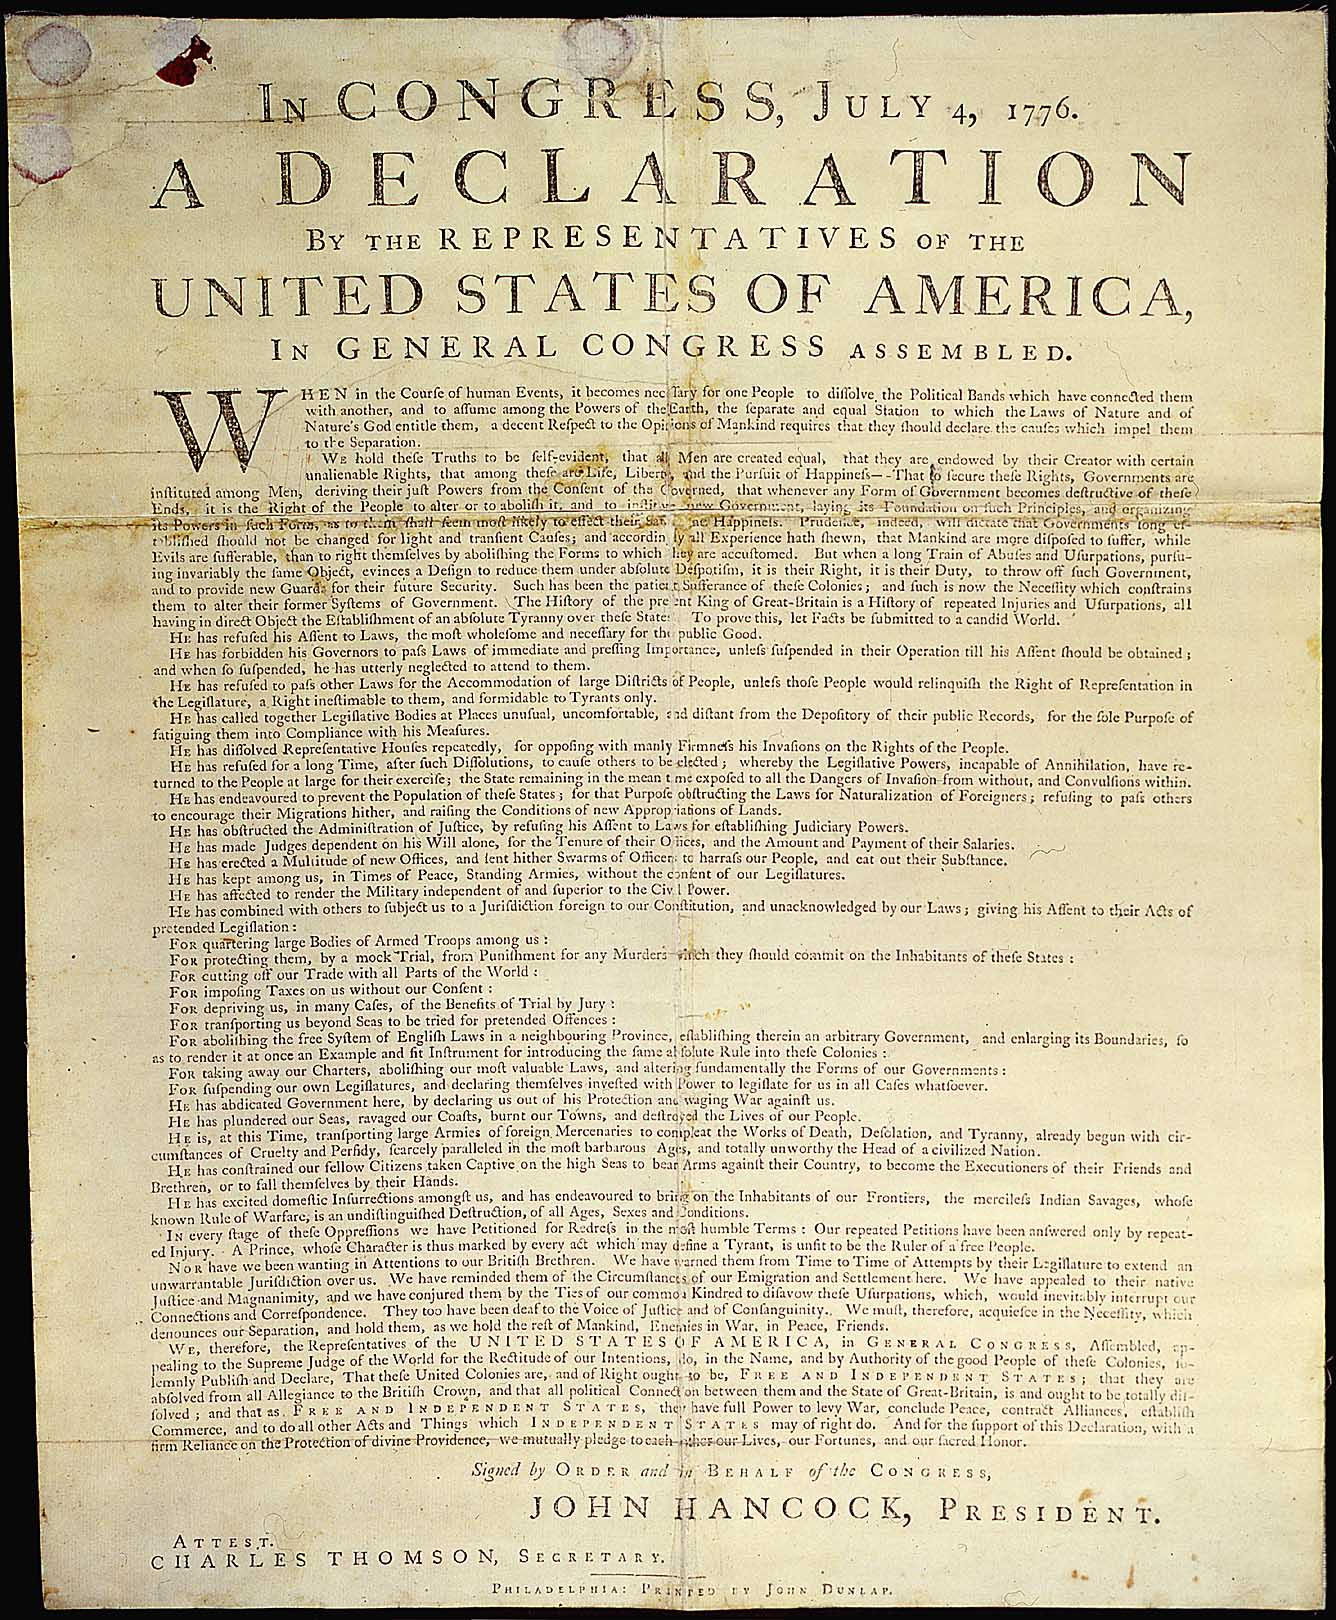 http://www.ushistory.org/declaration/document/images/declarationdunlap_large.jpg